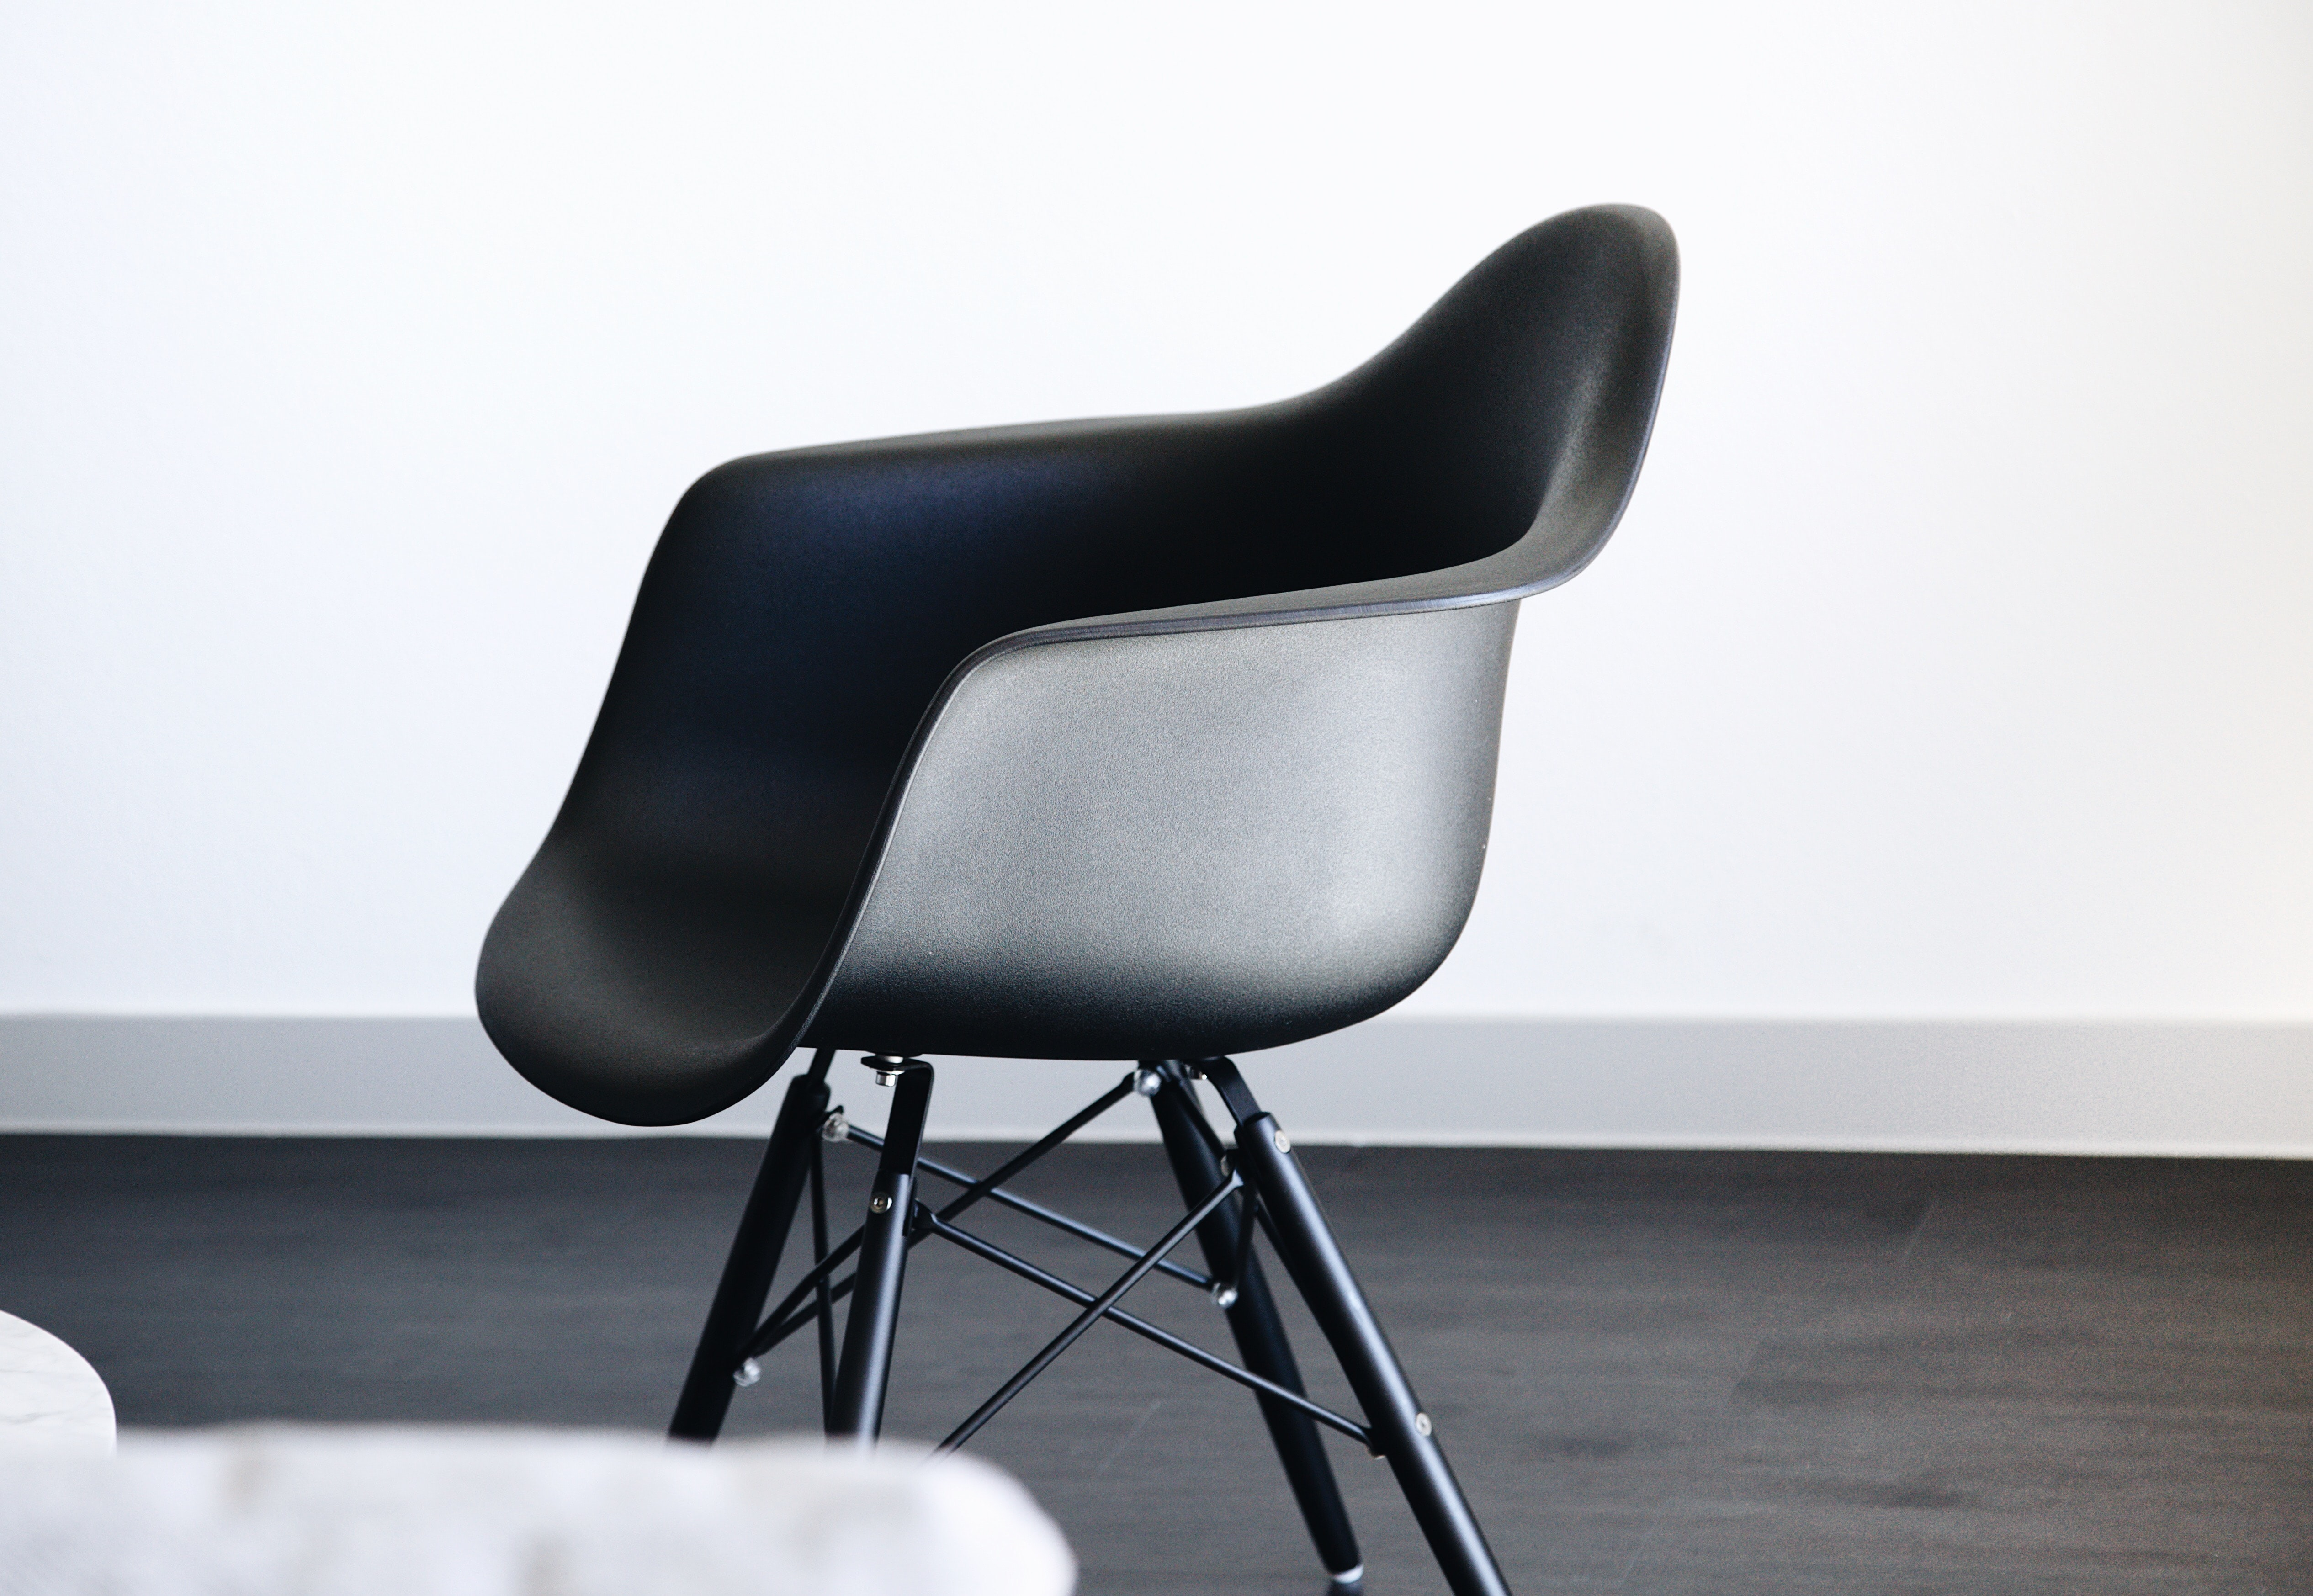 A small black plastic chair